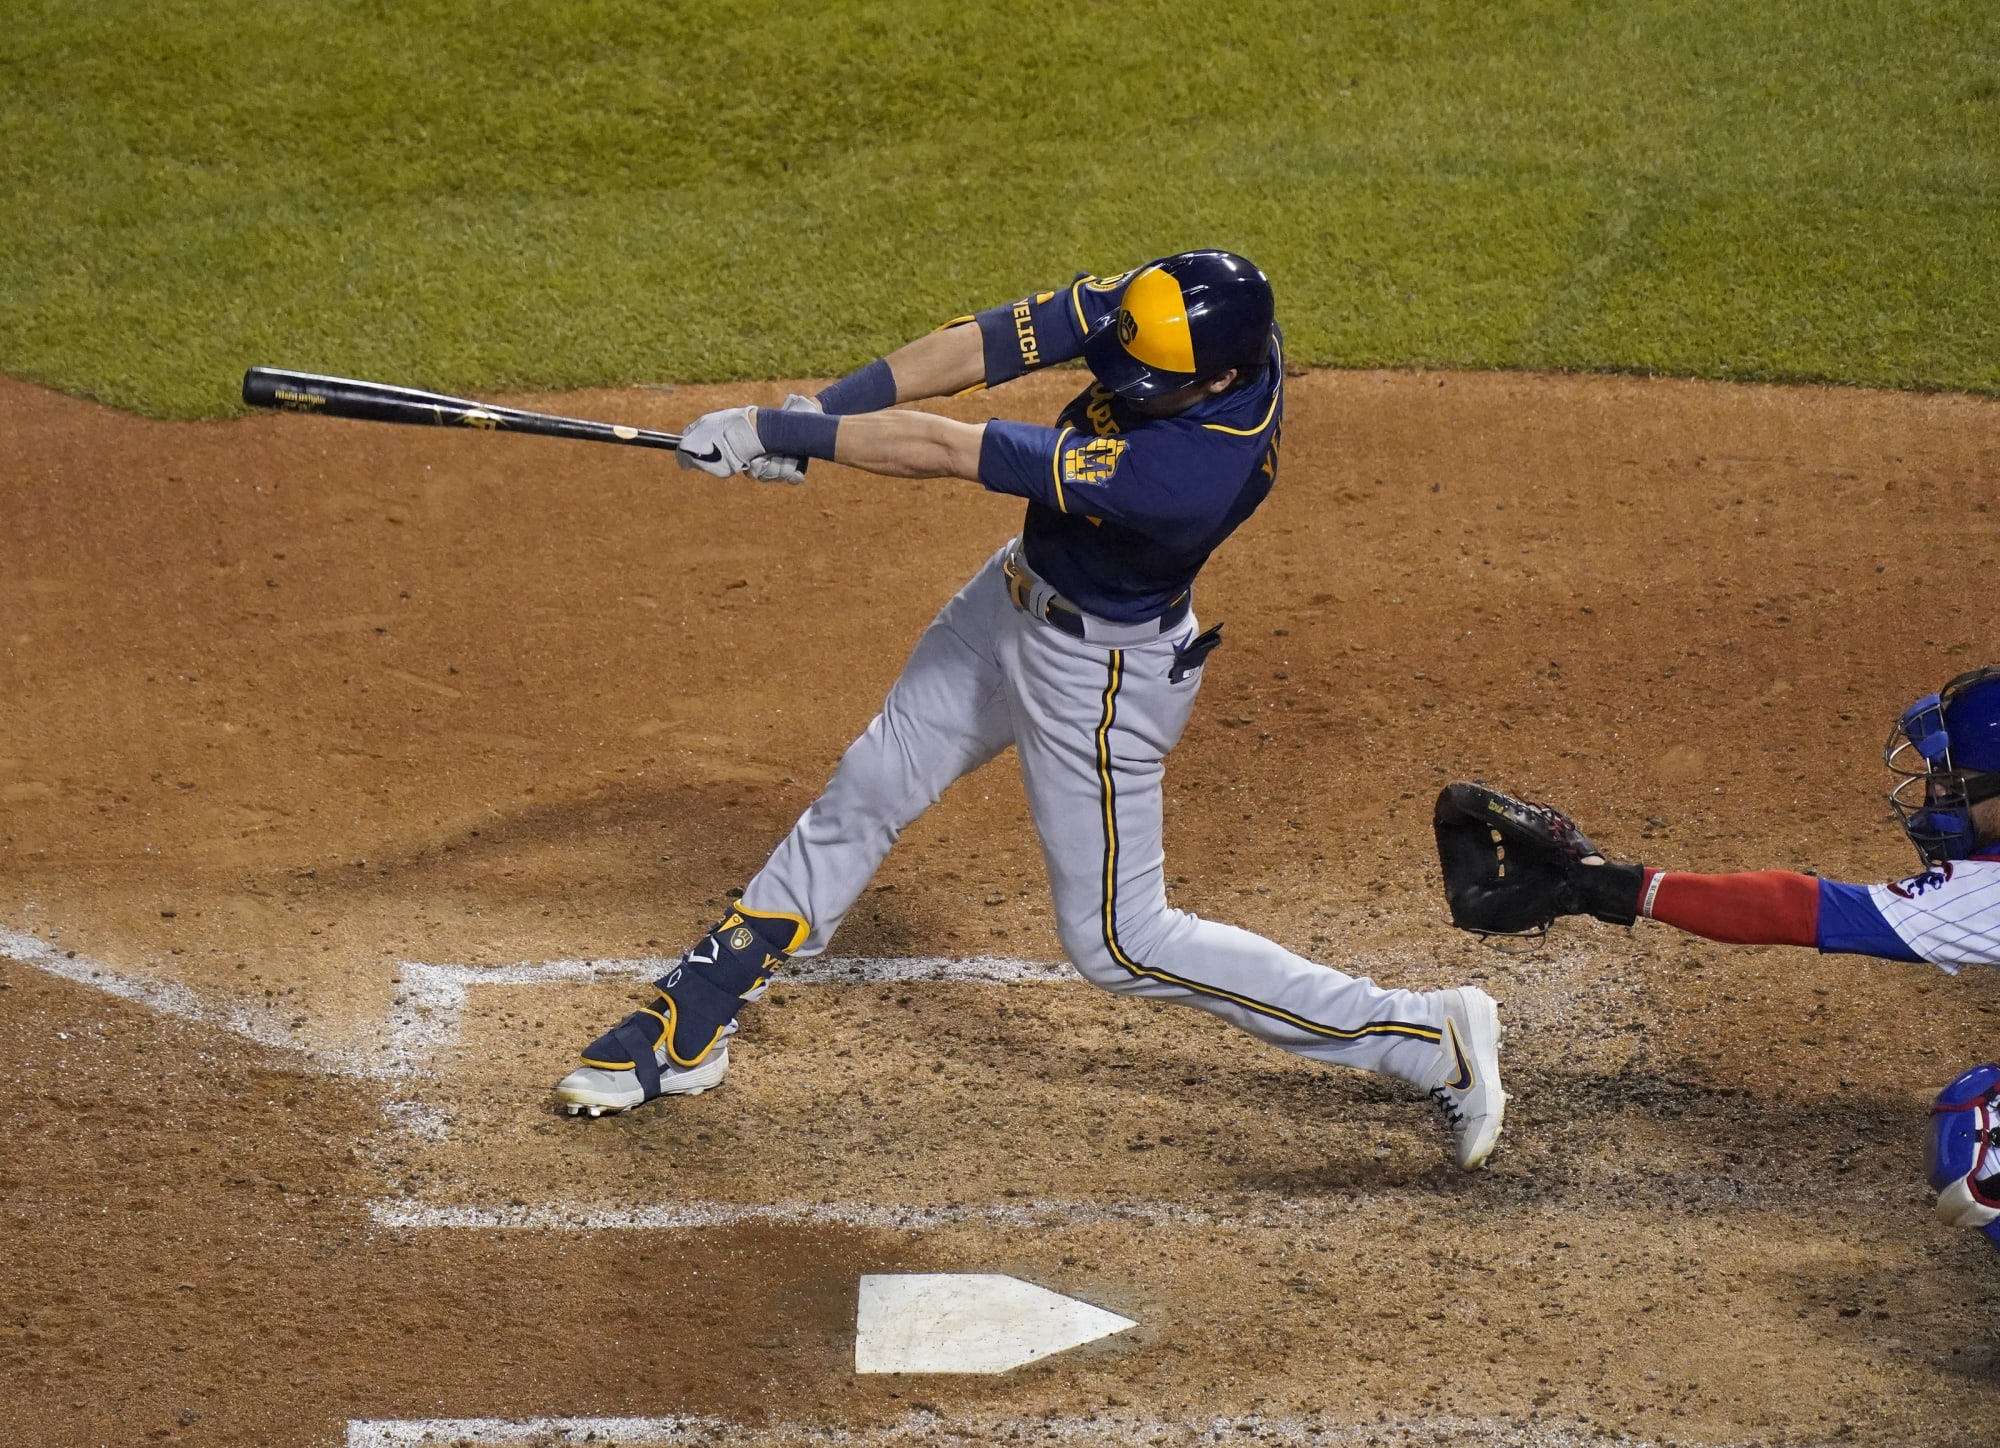 Brewers: Christian Yelich Credits Clutch Home Run To Chewing Gum